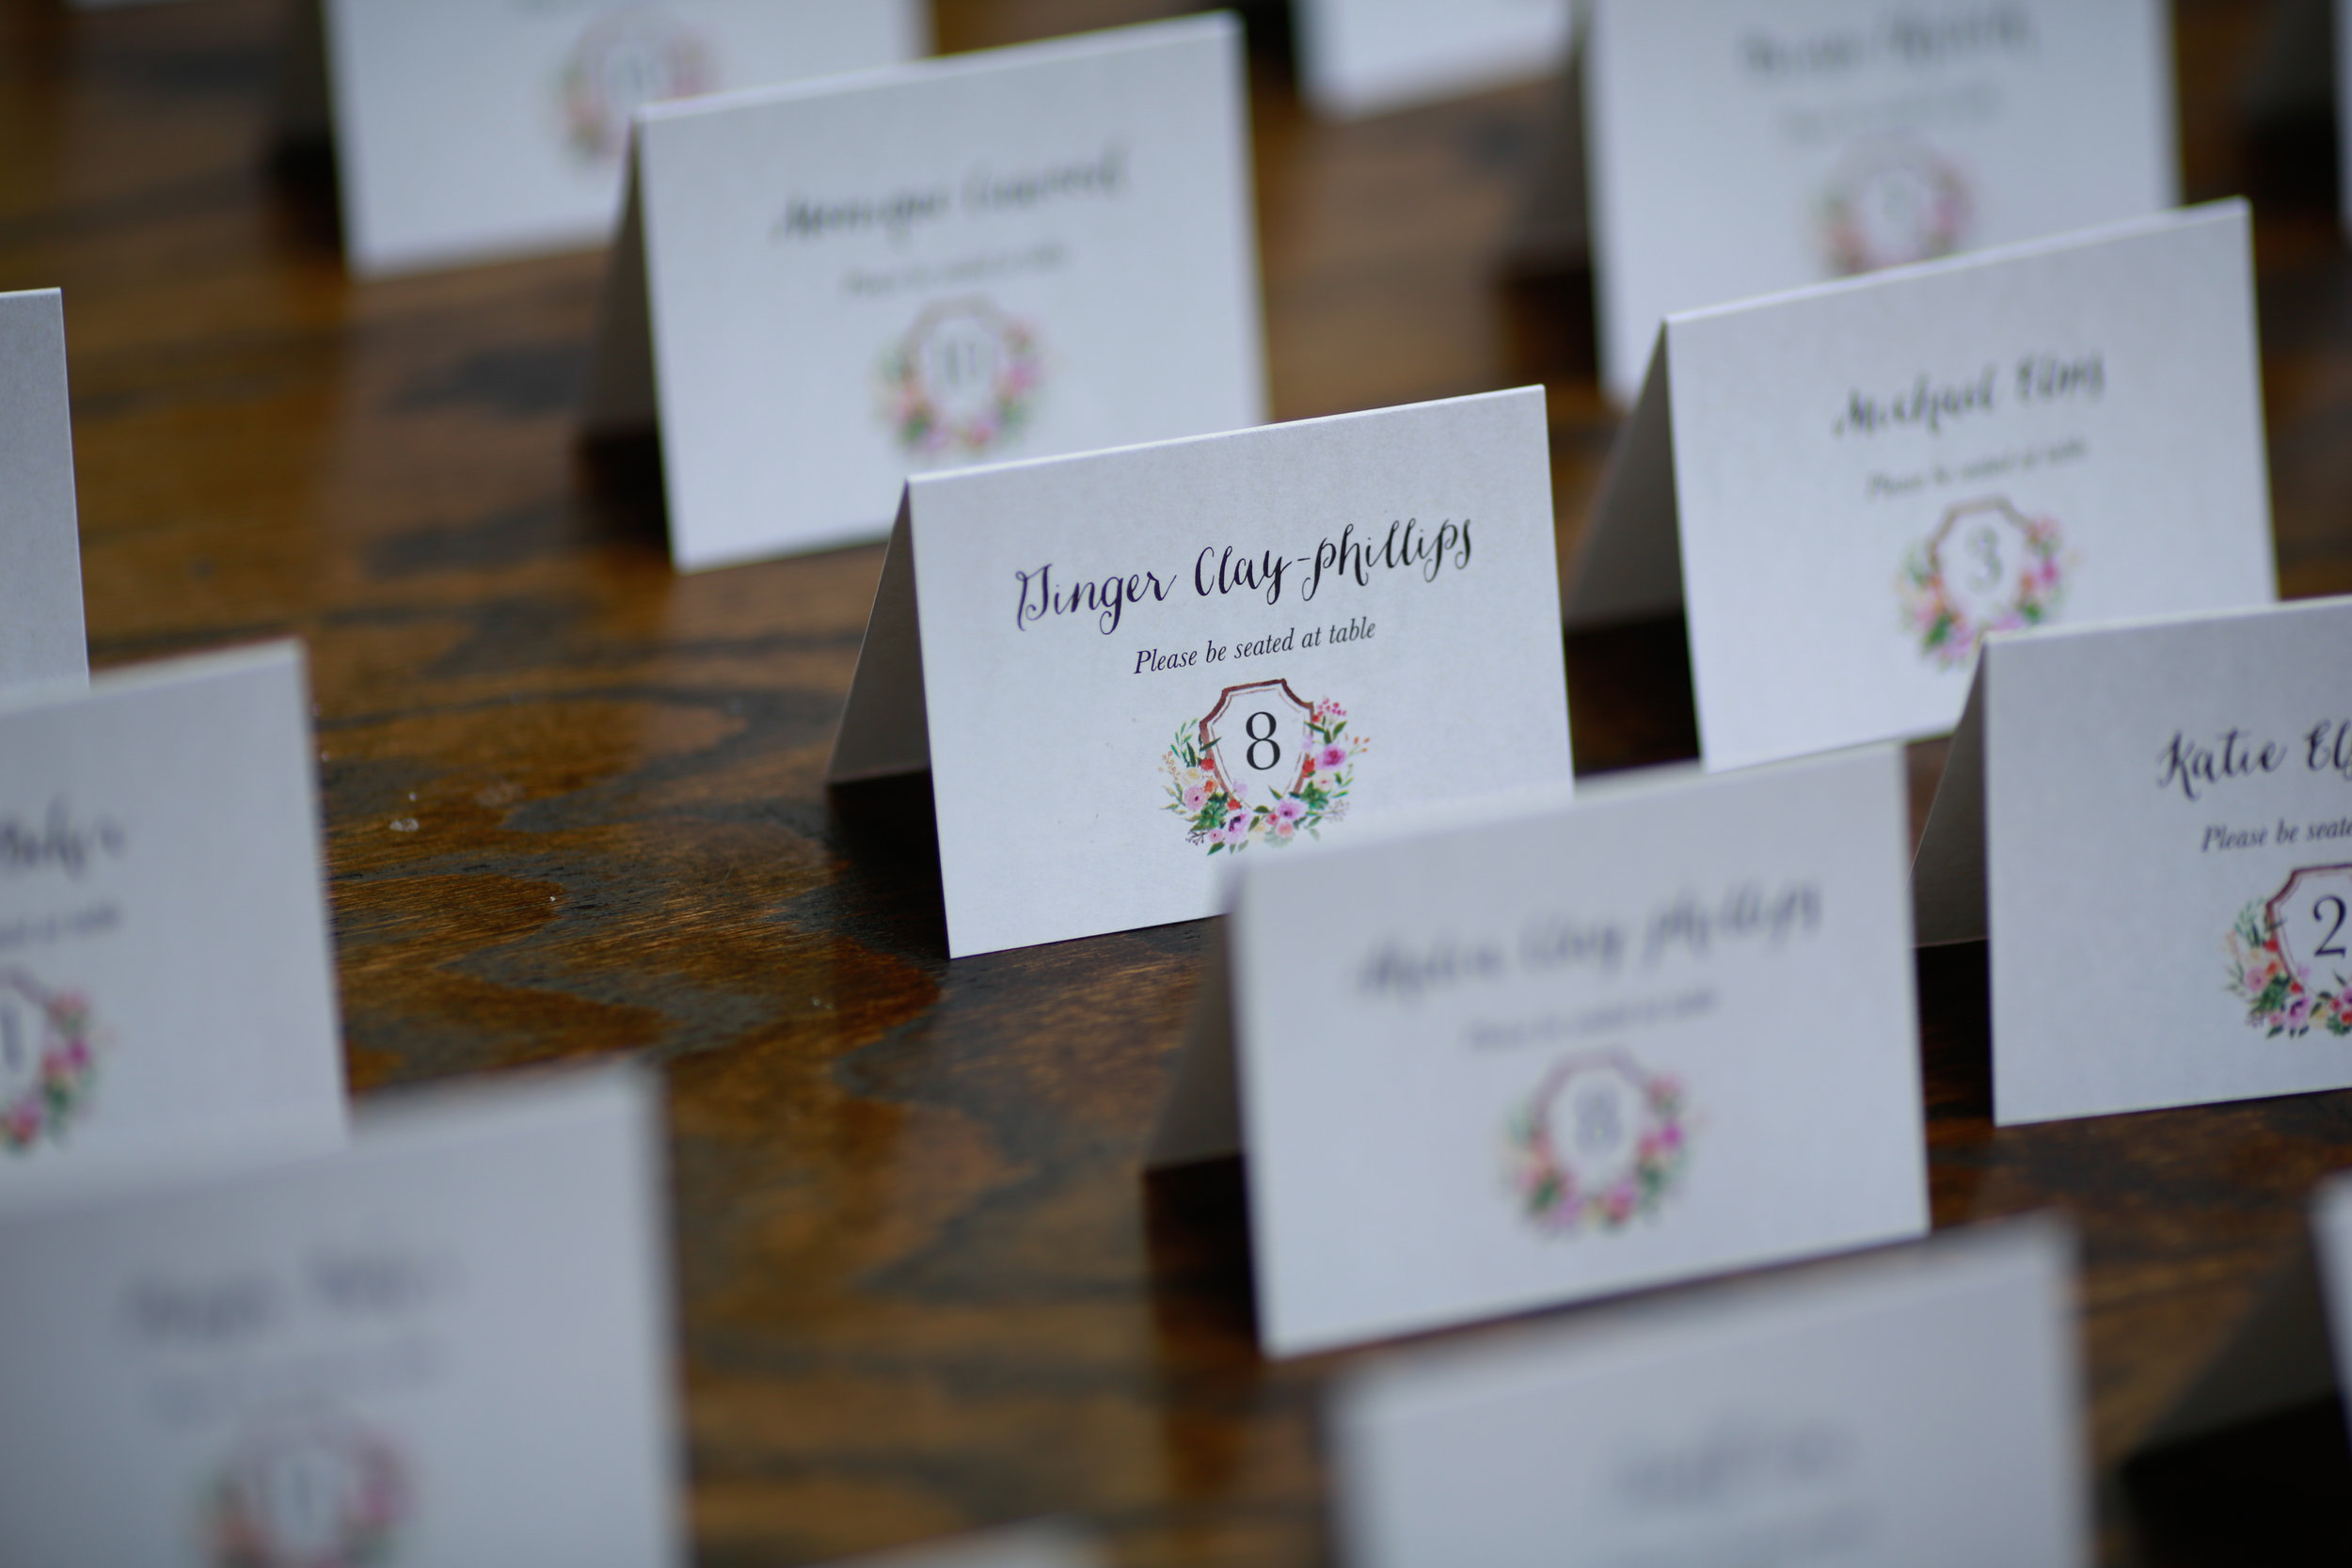 25 Place cards spring place cards floral place cards Mod Wed Photography Life Design Events .jpg